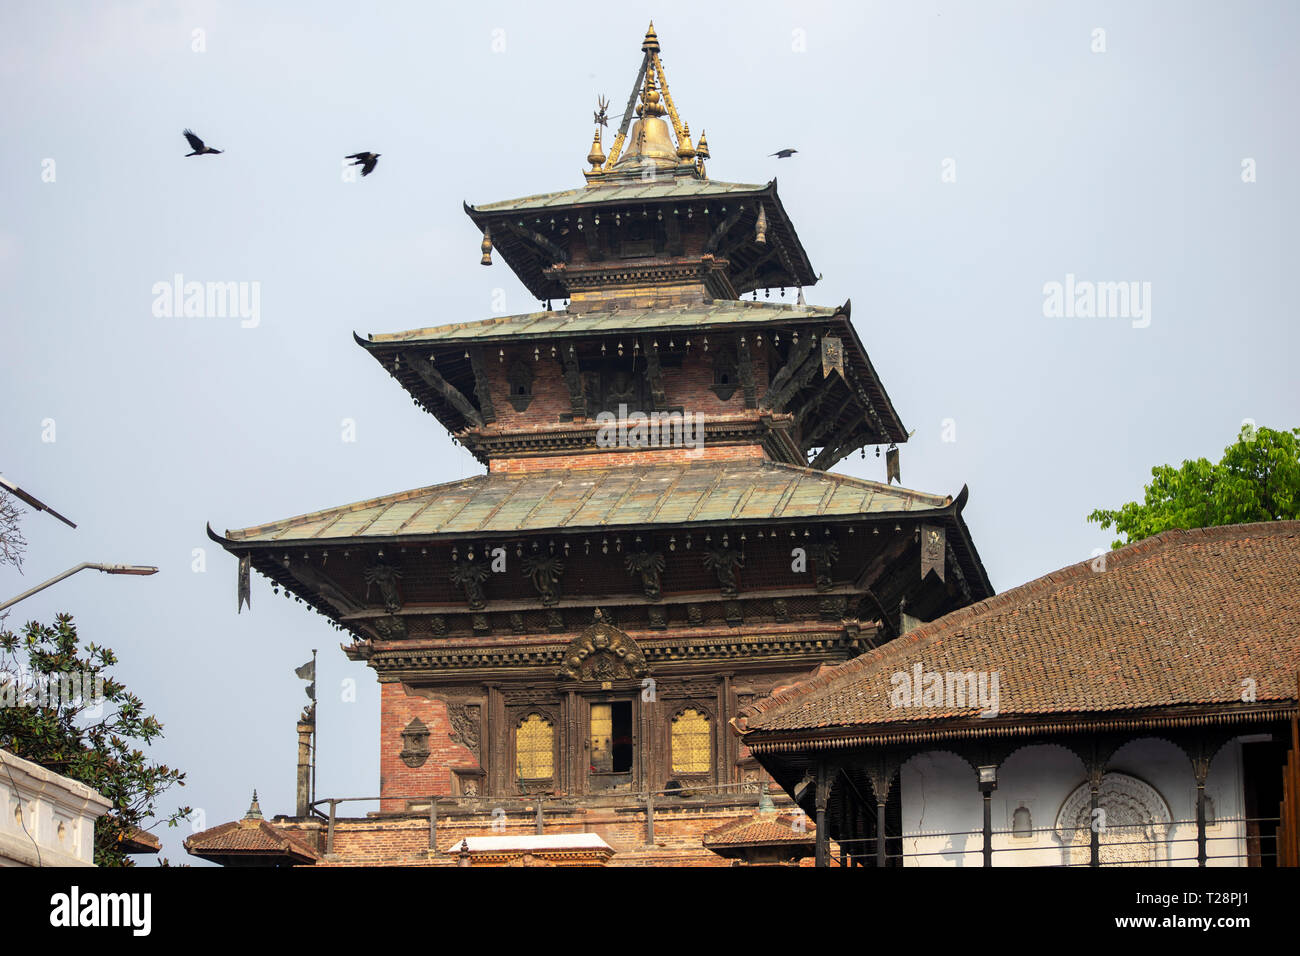 Kathmandu's royal palace, known as the Hanuman Dhoka, was originally founded during the Licchavi period 4th to 8th centuries AD. - Stock Image